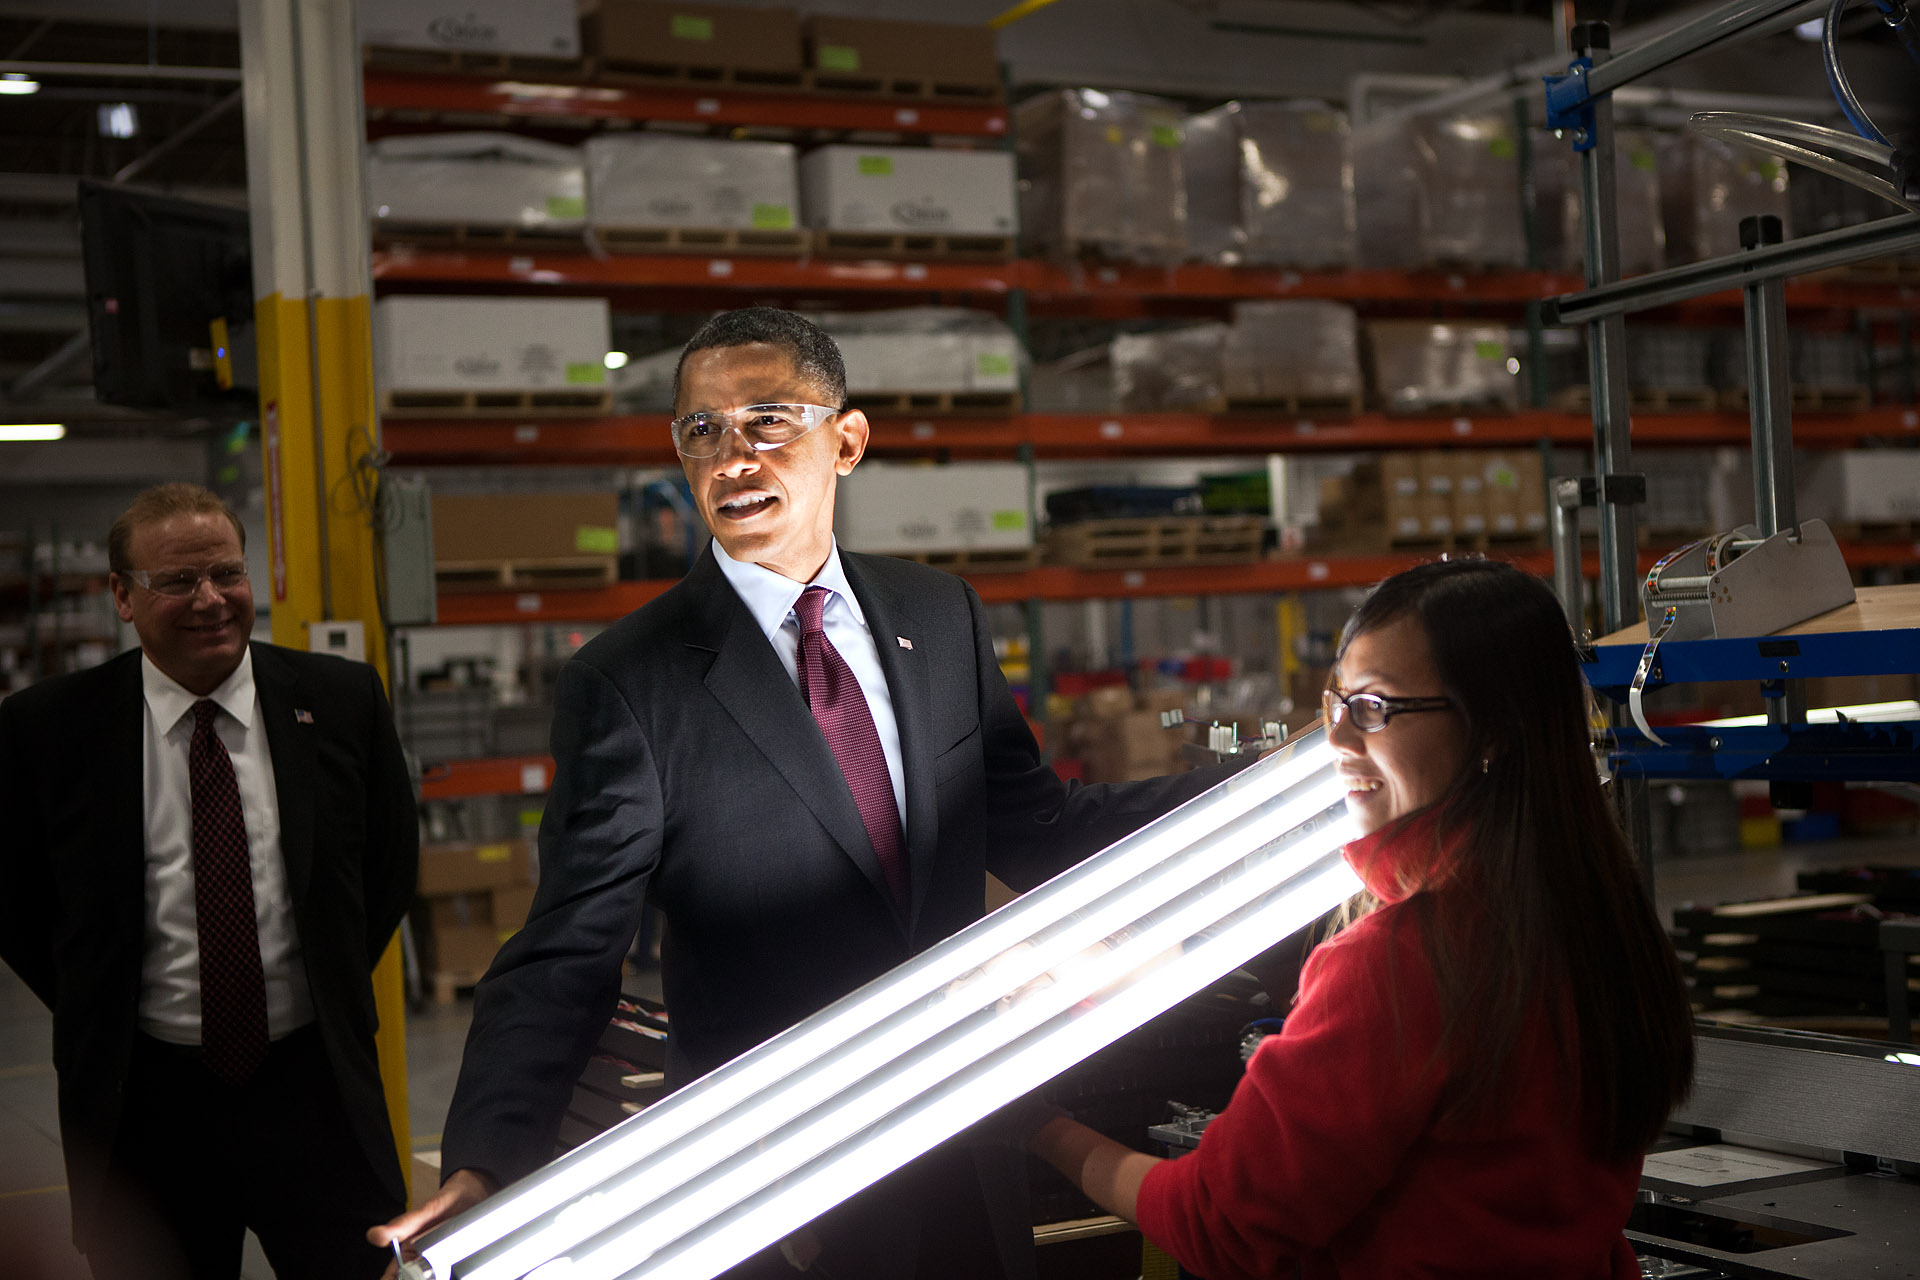 President Barack Obama Tours Orion Energy Systems, Inc